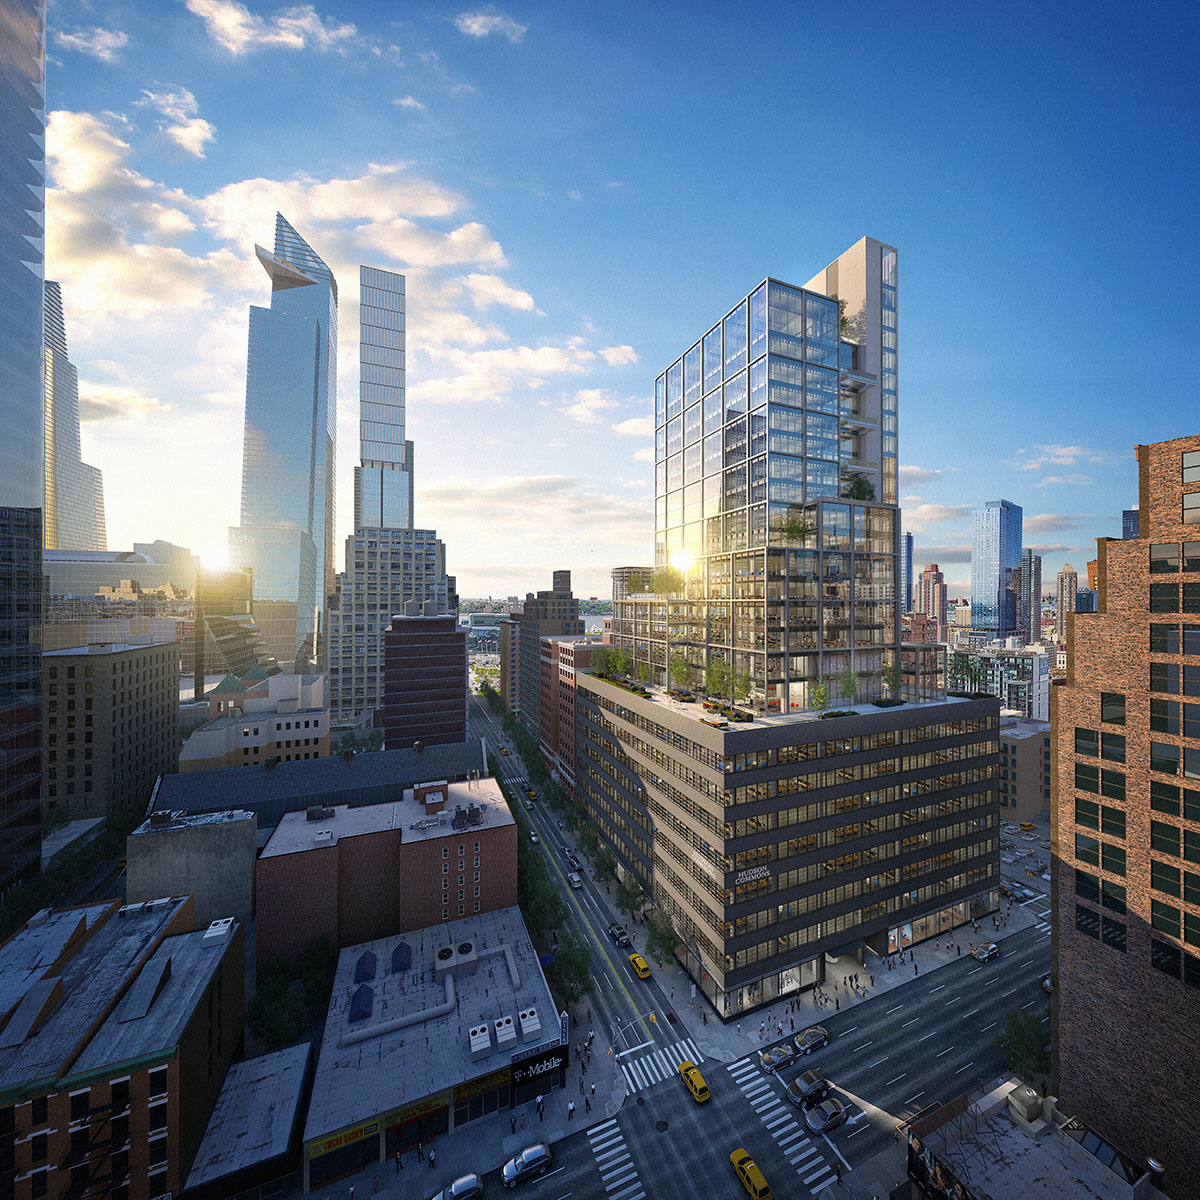 Get A First Look at The Newly Revealed Rendering For Hudson Yards' 441 Ninth Avenue